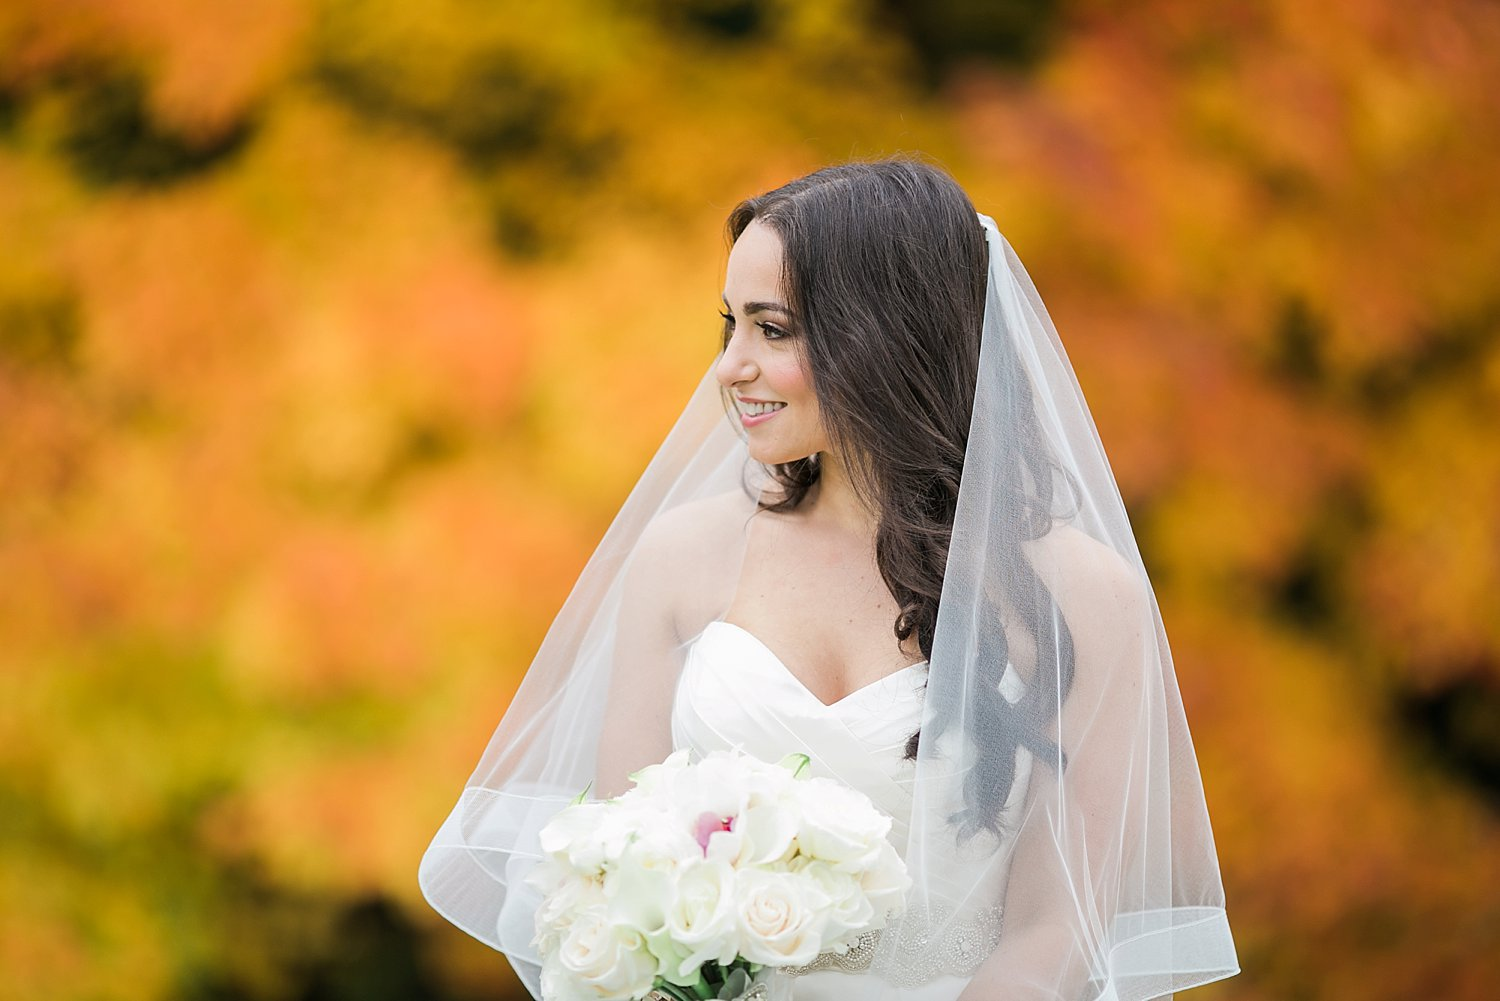 nyc-wedding-photography-nj-tri-state-cinematography-intothestory-by-moo-jae_0348.jpg